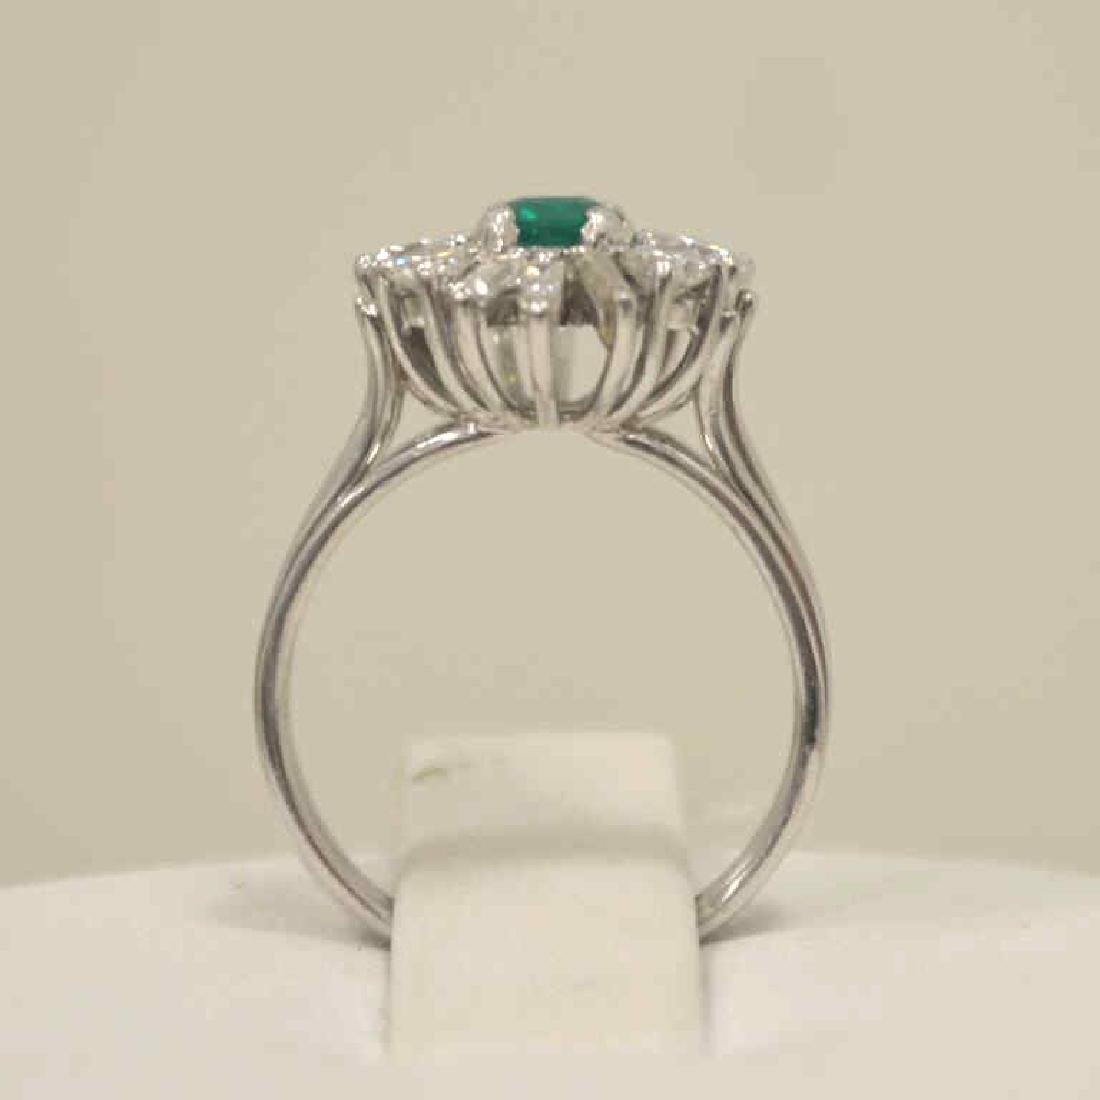 18kt white gold emerald and diamond ring - 3